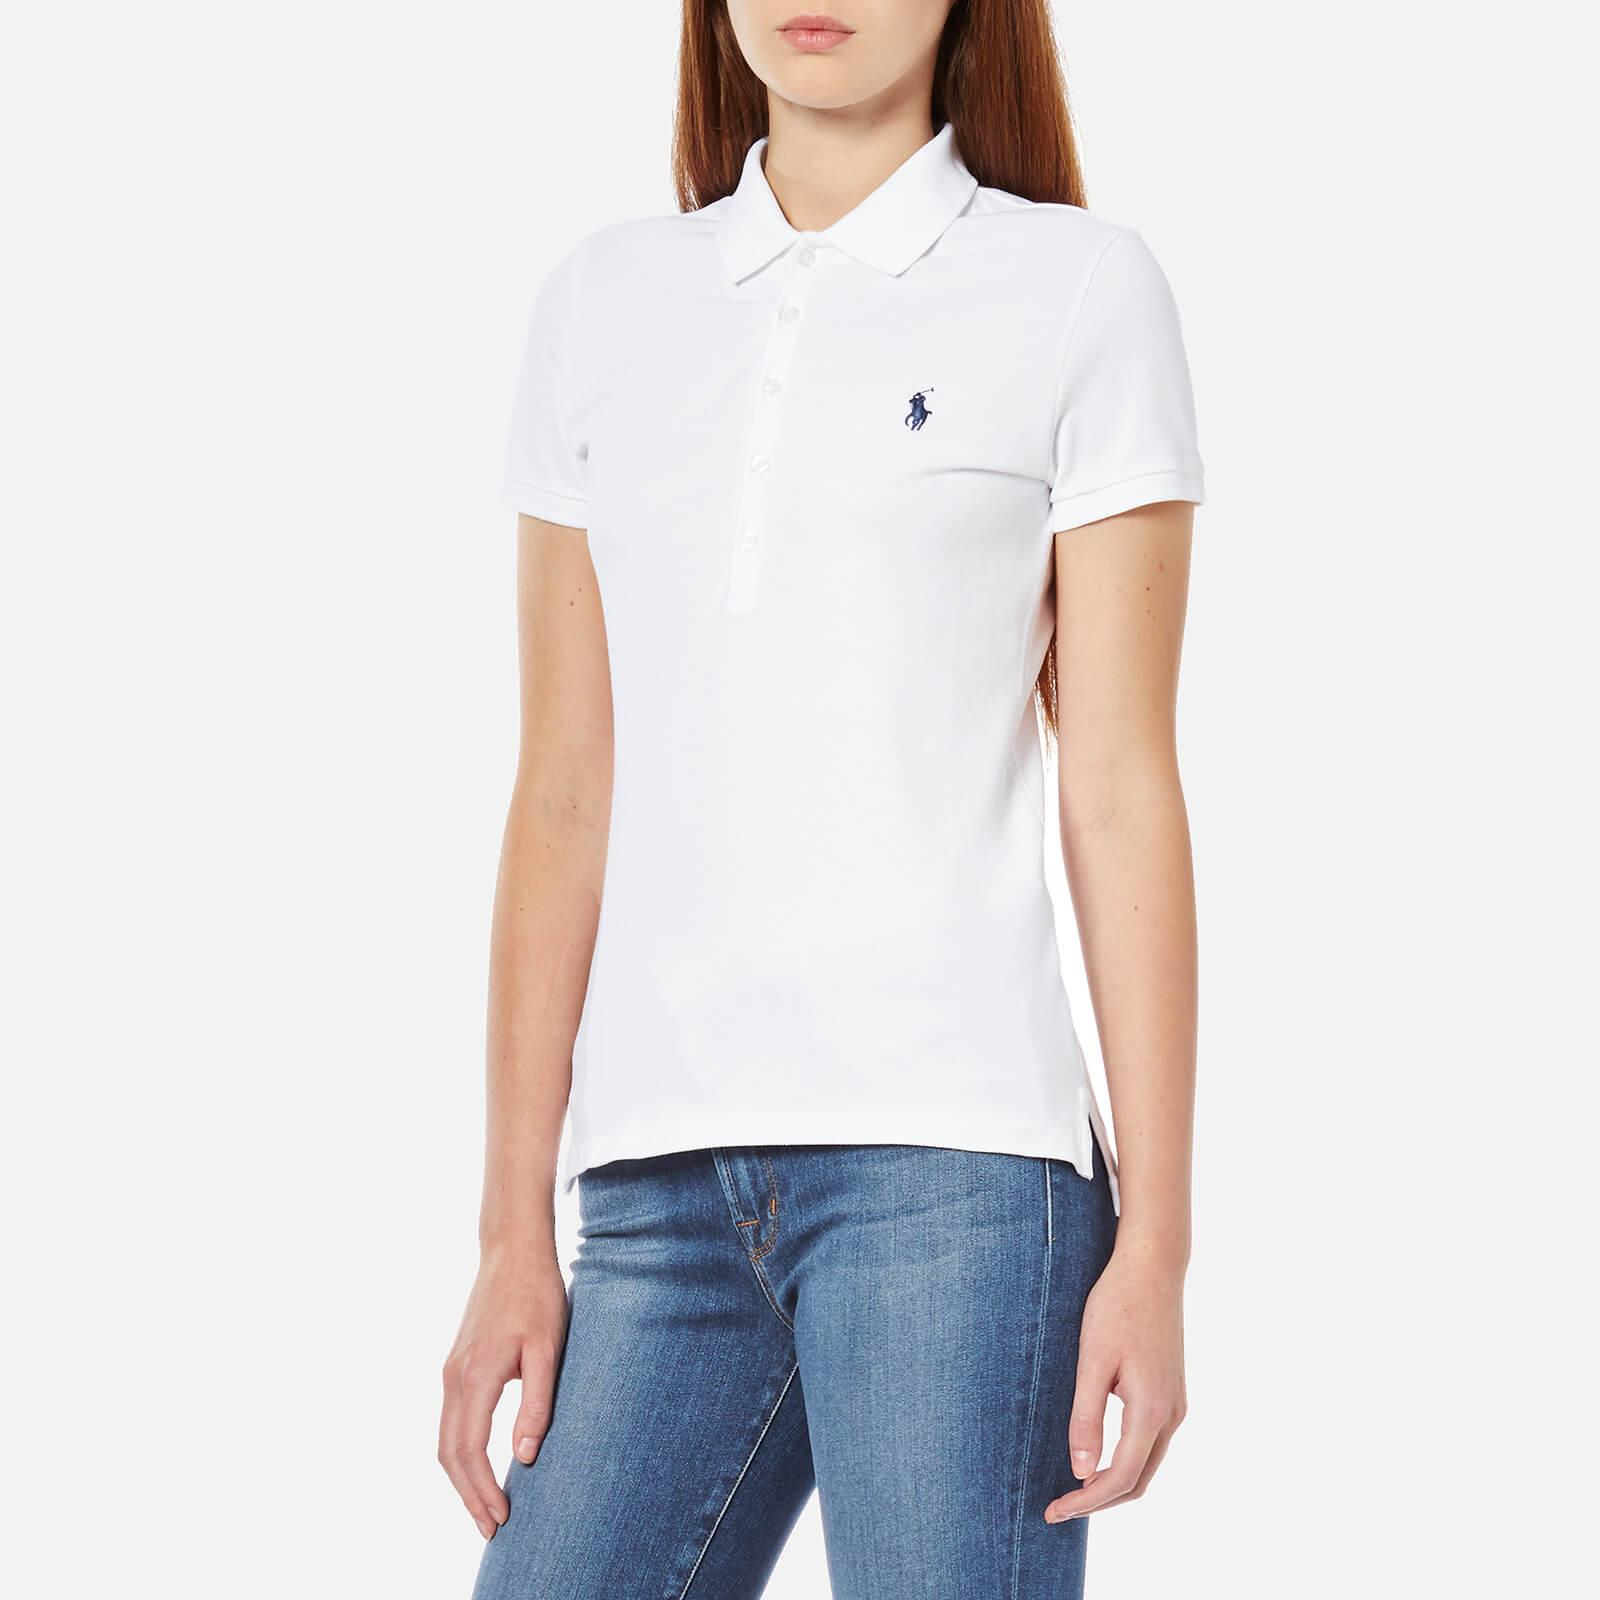 b163a1235 ... Ralph Lauren - White Julie Polo Shirt - Lyst. Visit Coggles. Tap to  visit site